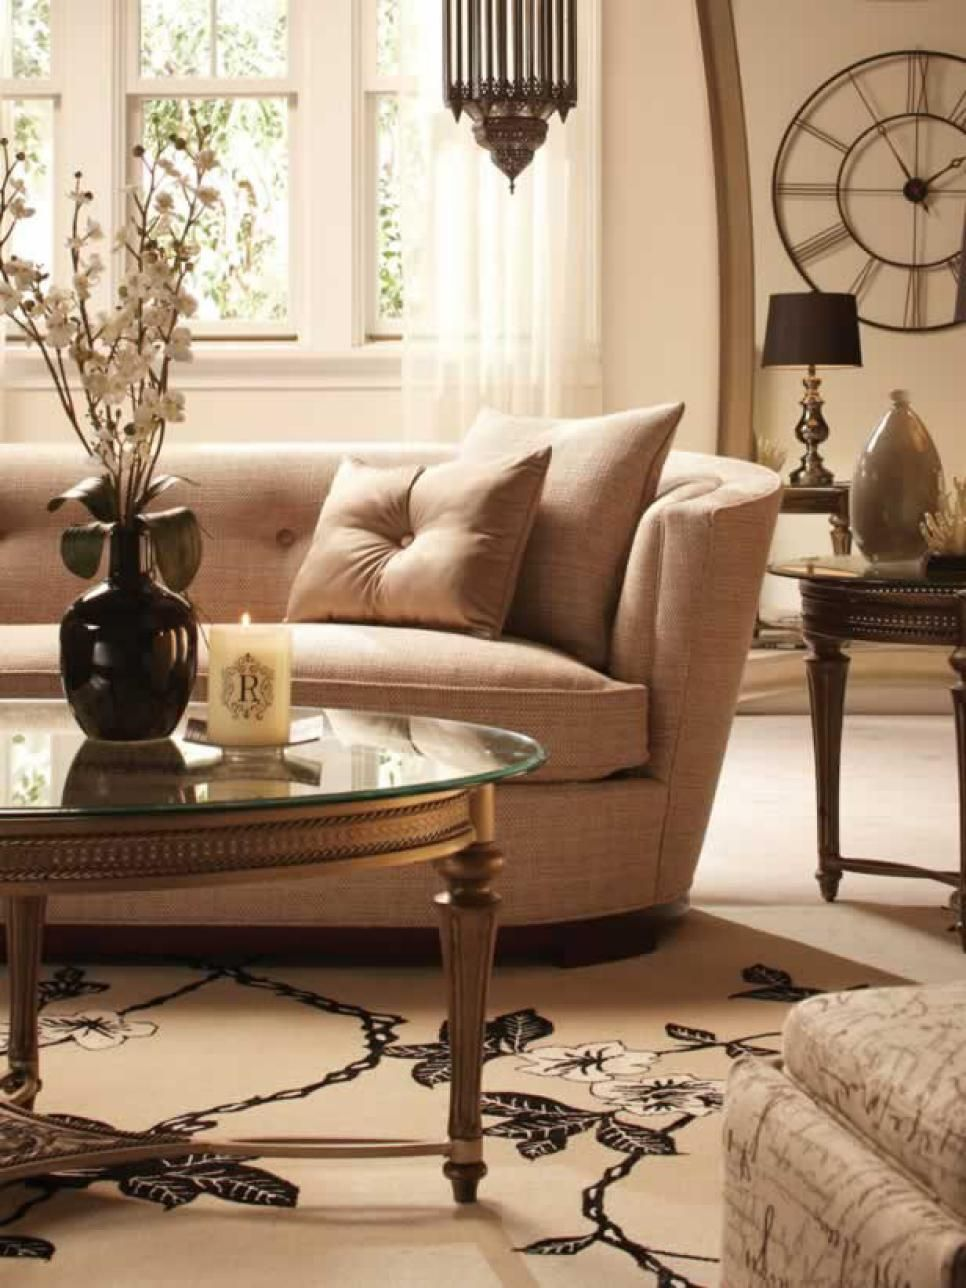 This Living Room Space Has A Round Glass Coffee Table Floral Area